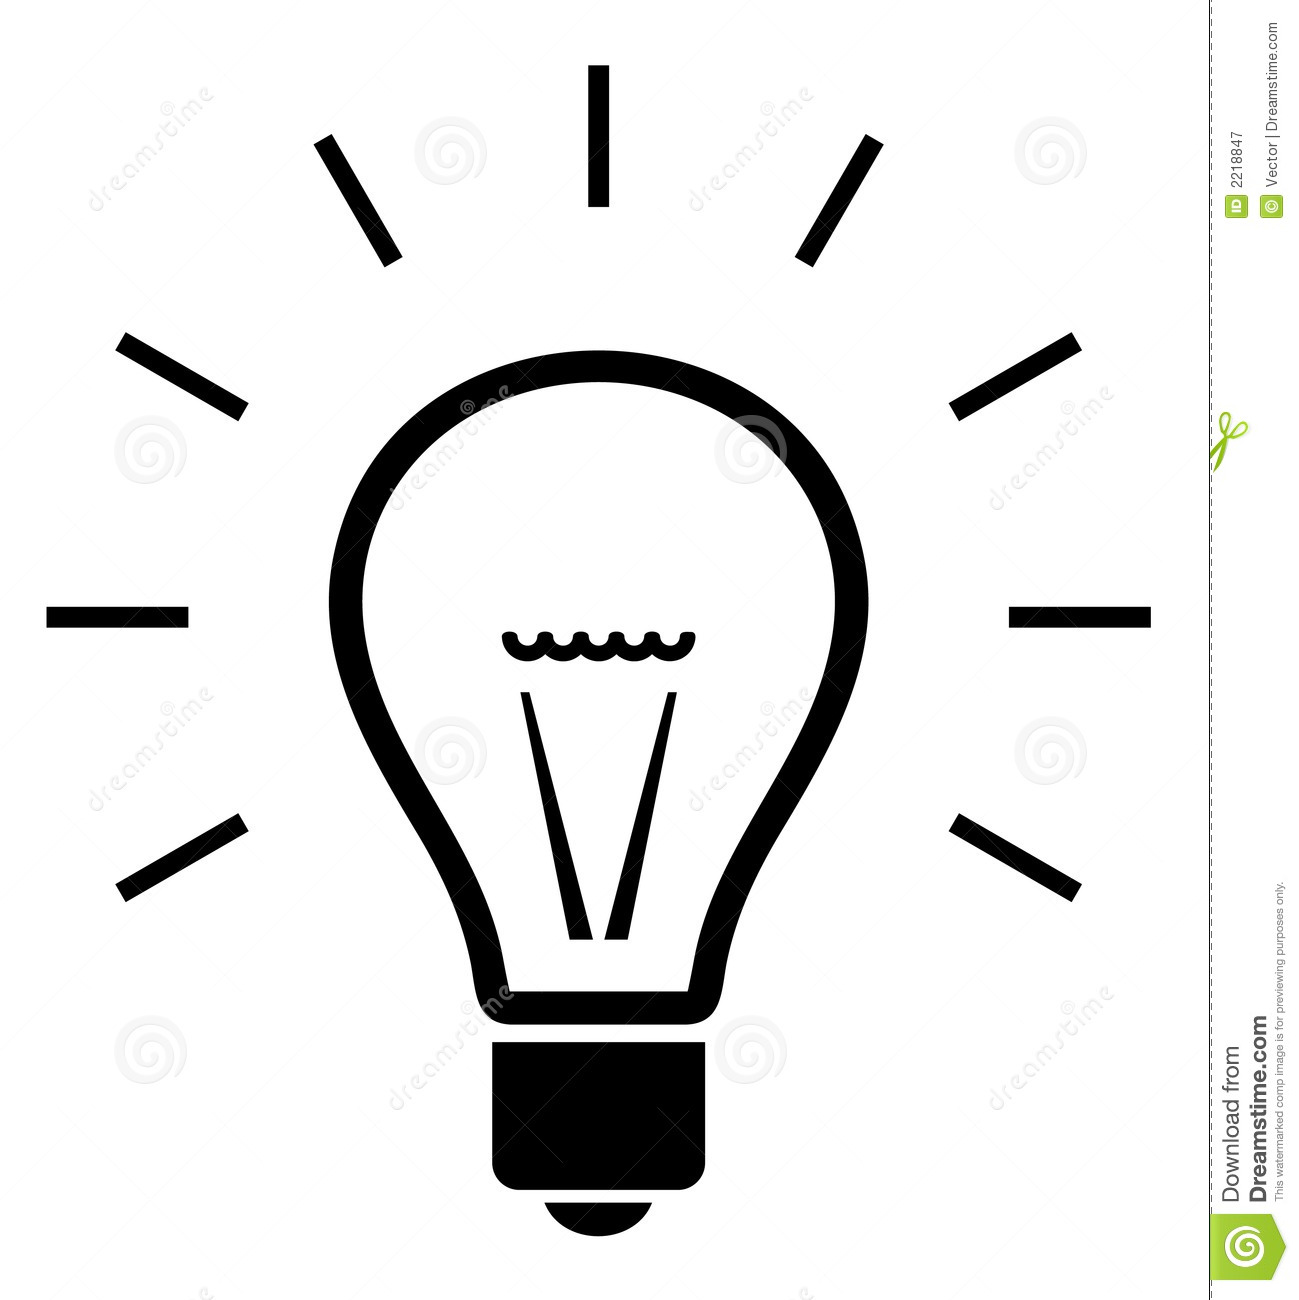 Bulb Illustration Royalty Free Stock Photography